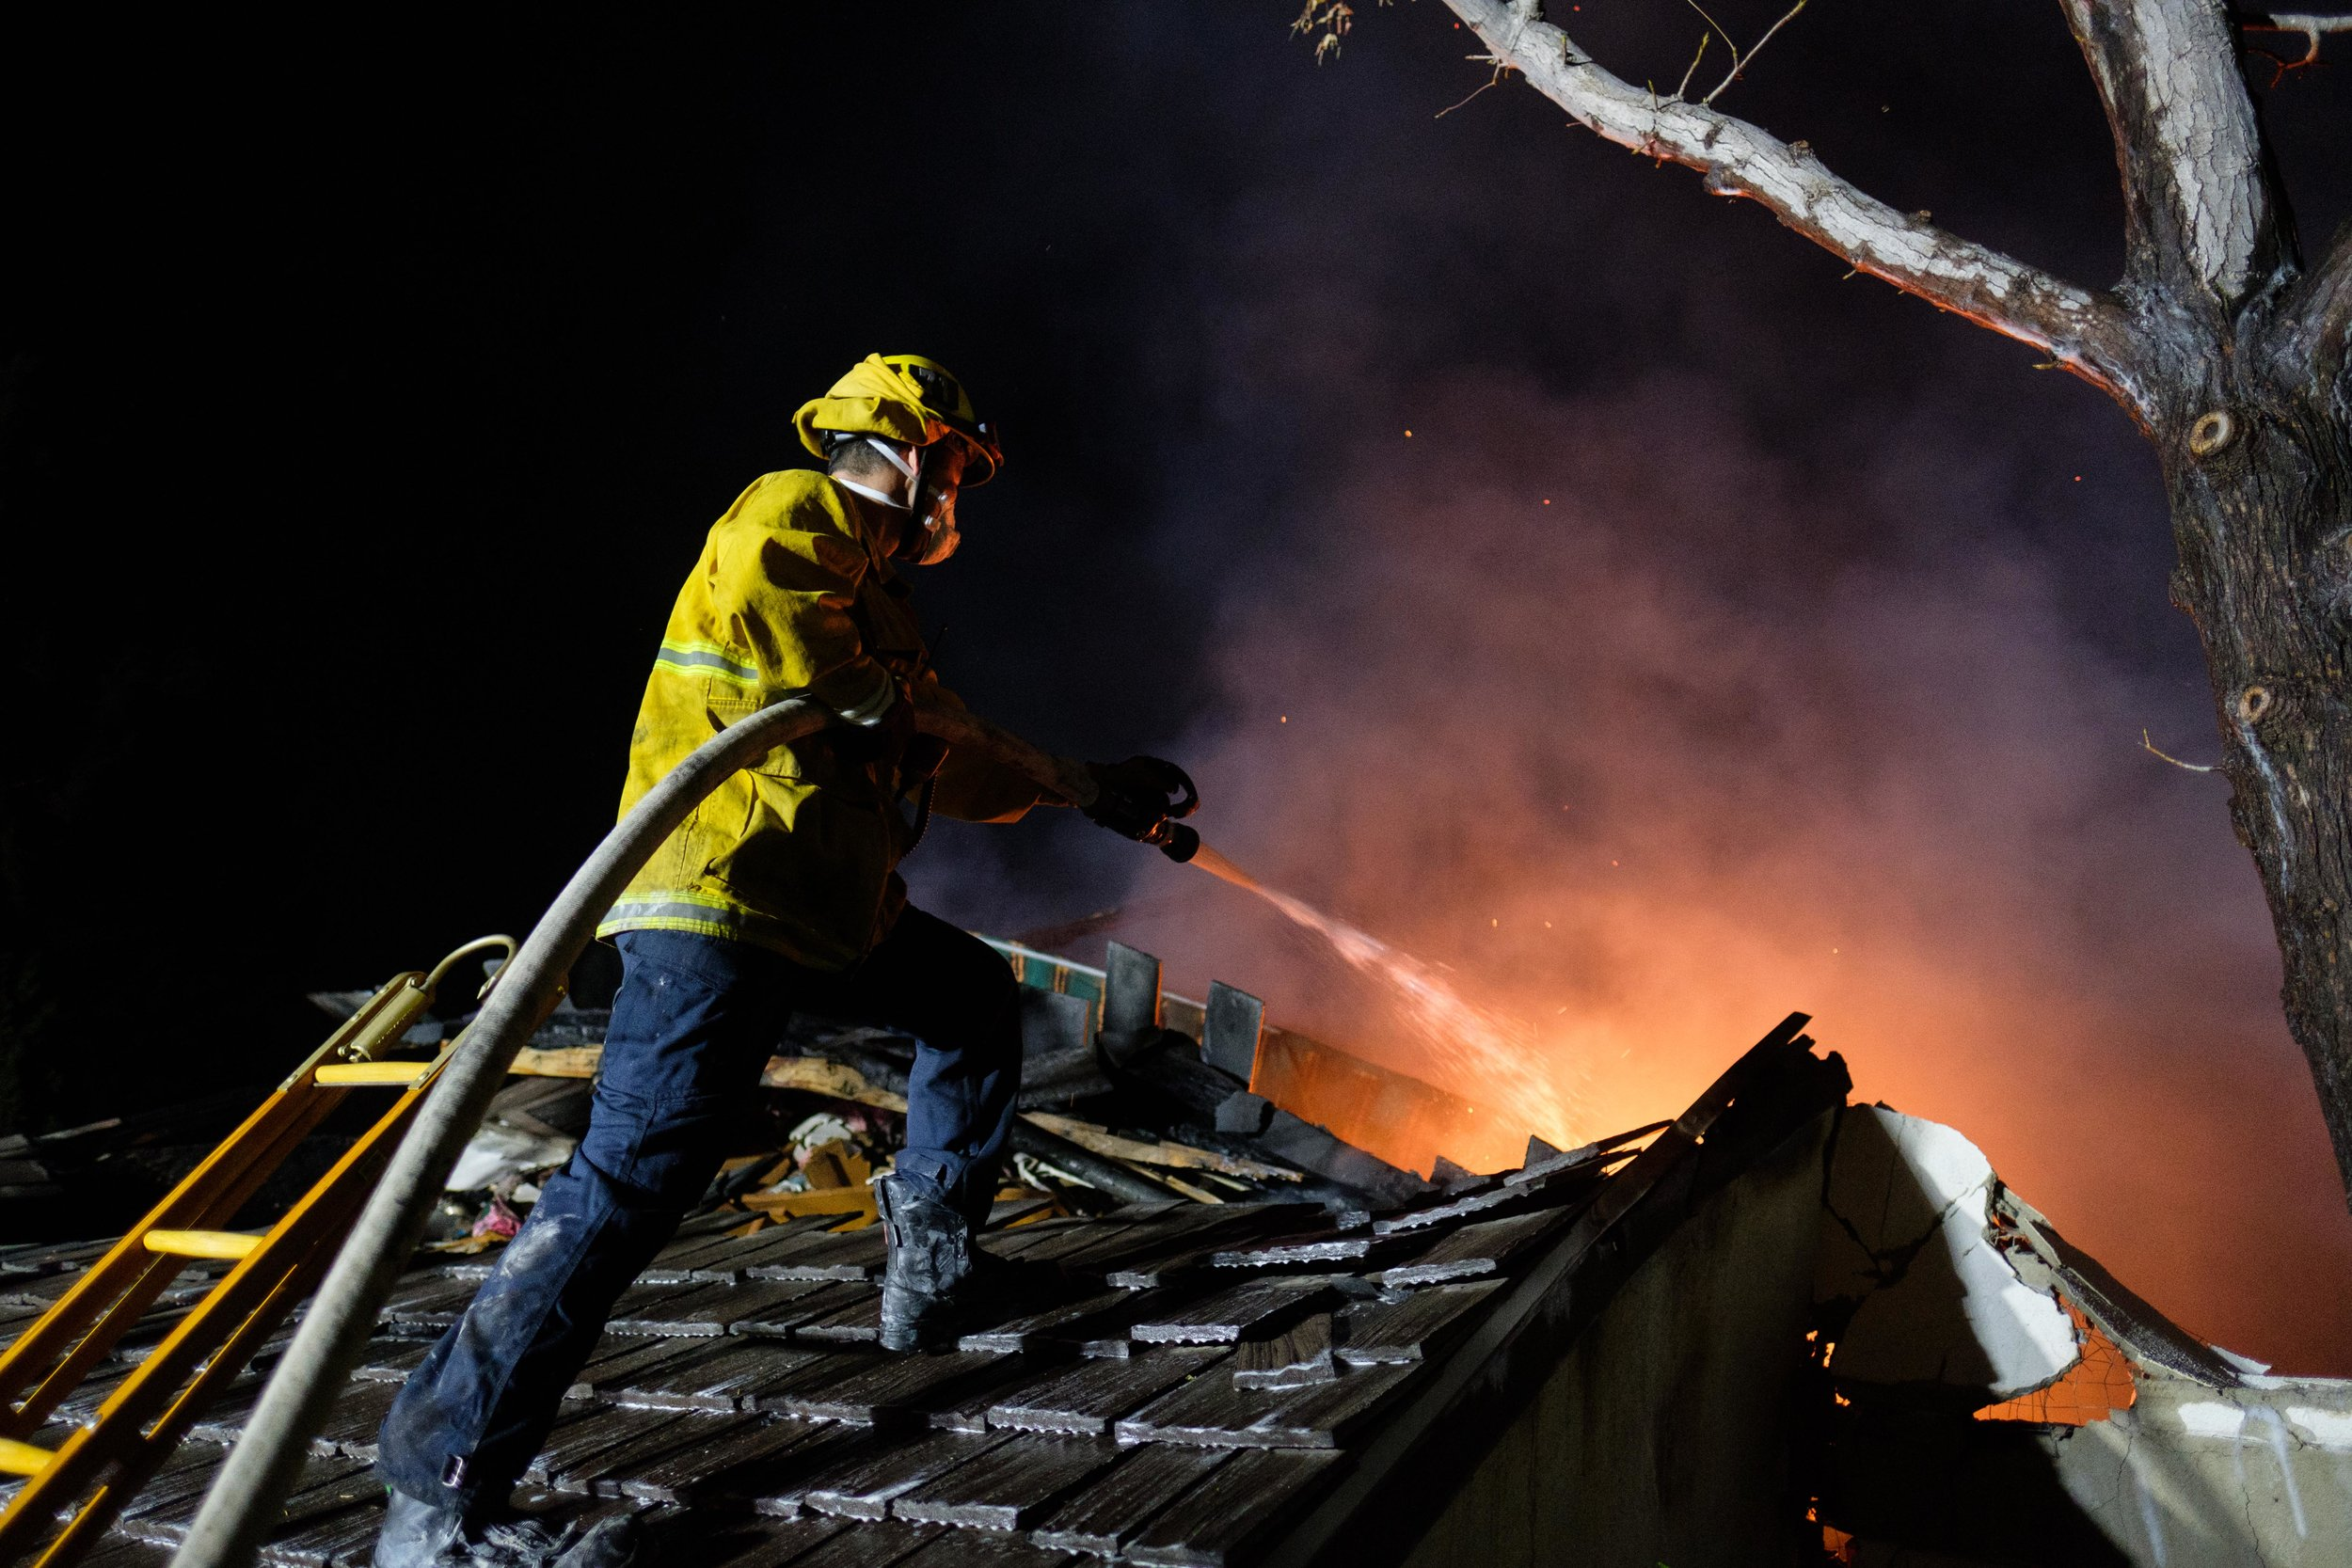 Los Angeles Fire Department firefighter on a rooftop, hosing down a flame inside the house. The LAFD has been battling the Skirball Fire since the early morning of Dec. 6, 2017. In Los Angeles, Calif. (Photo by Jayrol San Jose)